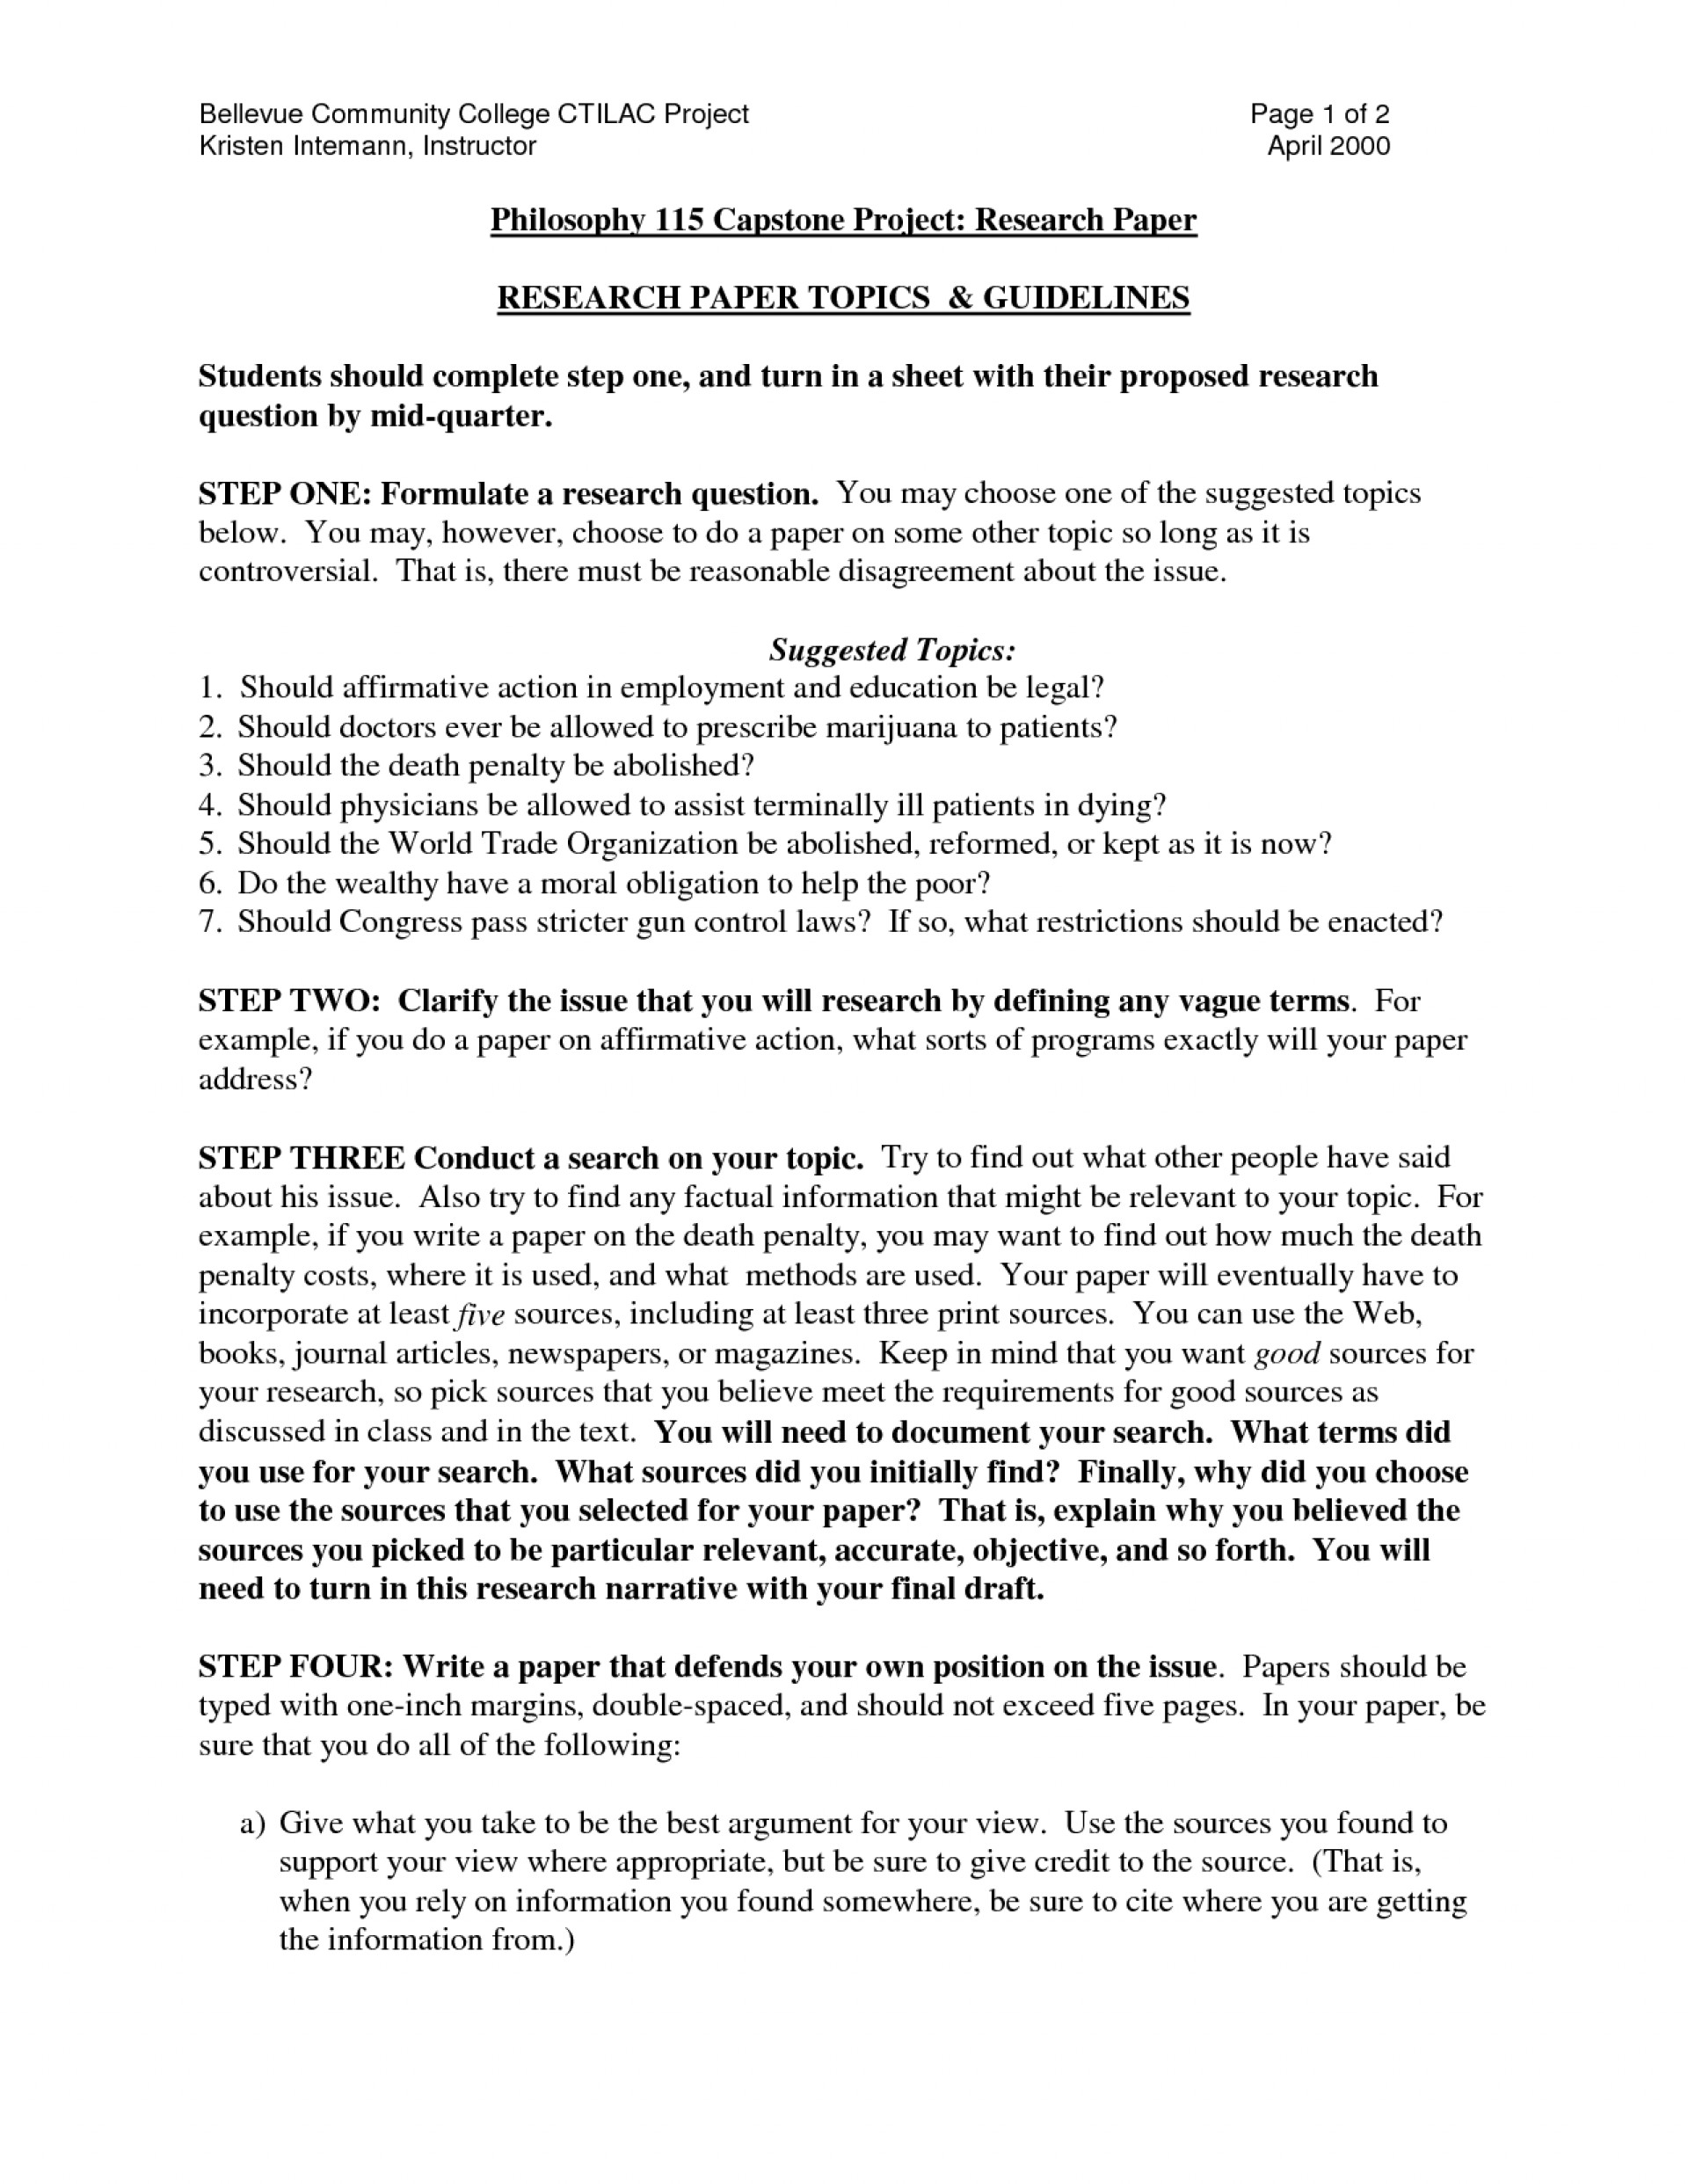 Friendship Essay In English  Essay Paper Writing Service also My English Essay  Example Of Good College Research Paper Essays Sample  Examples Of Thesis Statements For Narrative Essays